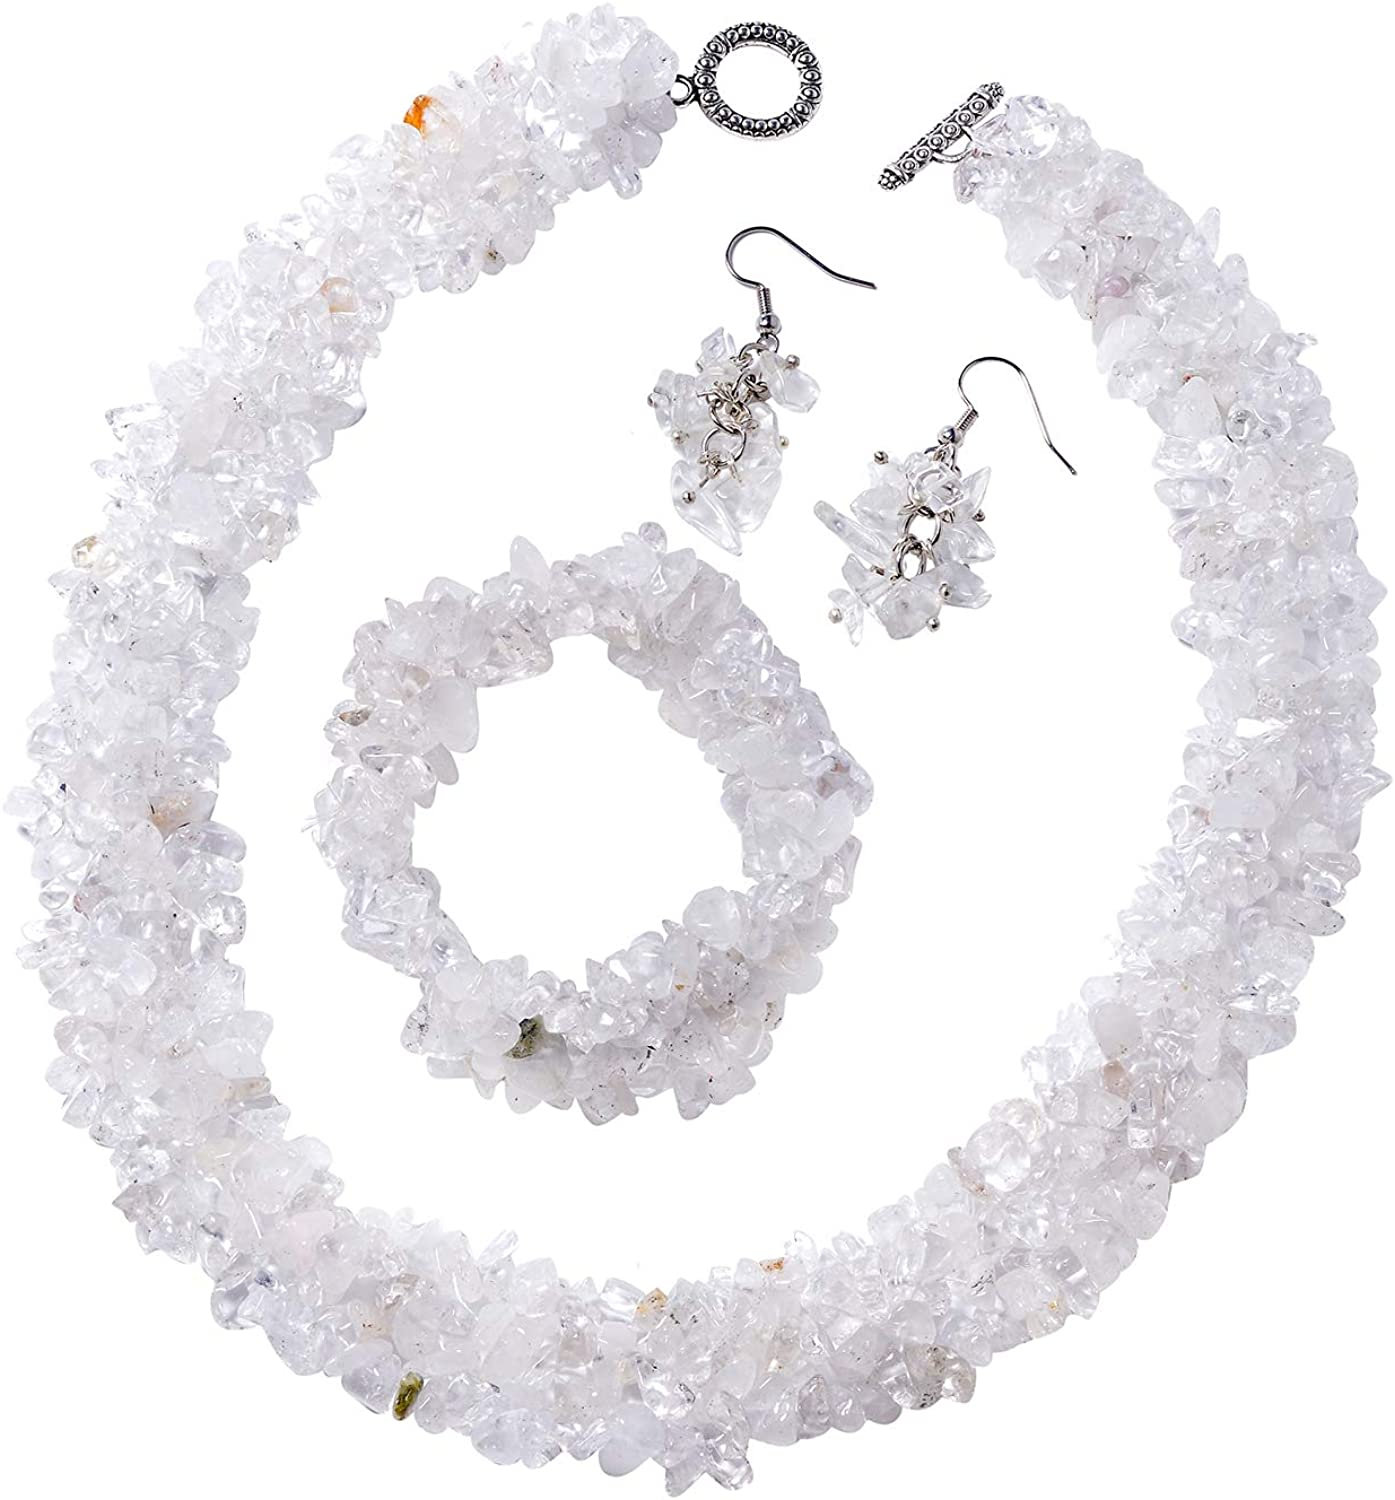 Shop LC White Crystal Quartz Chips Stainless Steel Earrings, 6.5 Inches Bracelet and 18 Inches Necklace Set Unique Gifts for Women